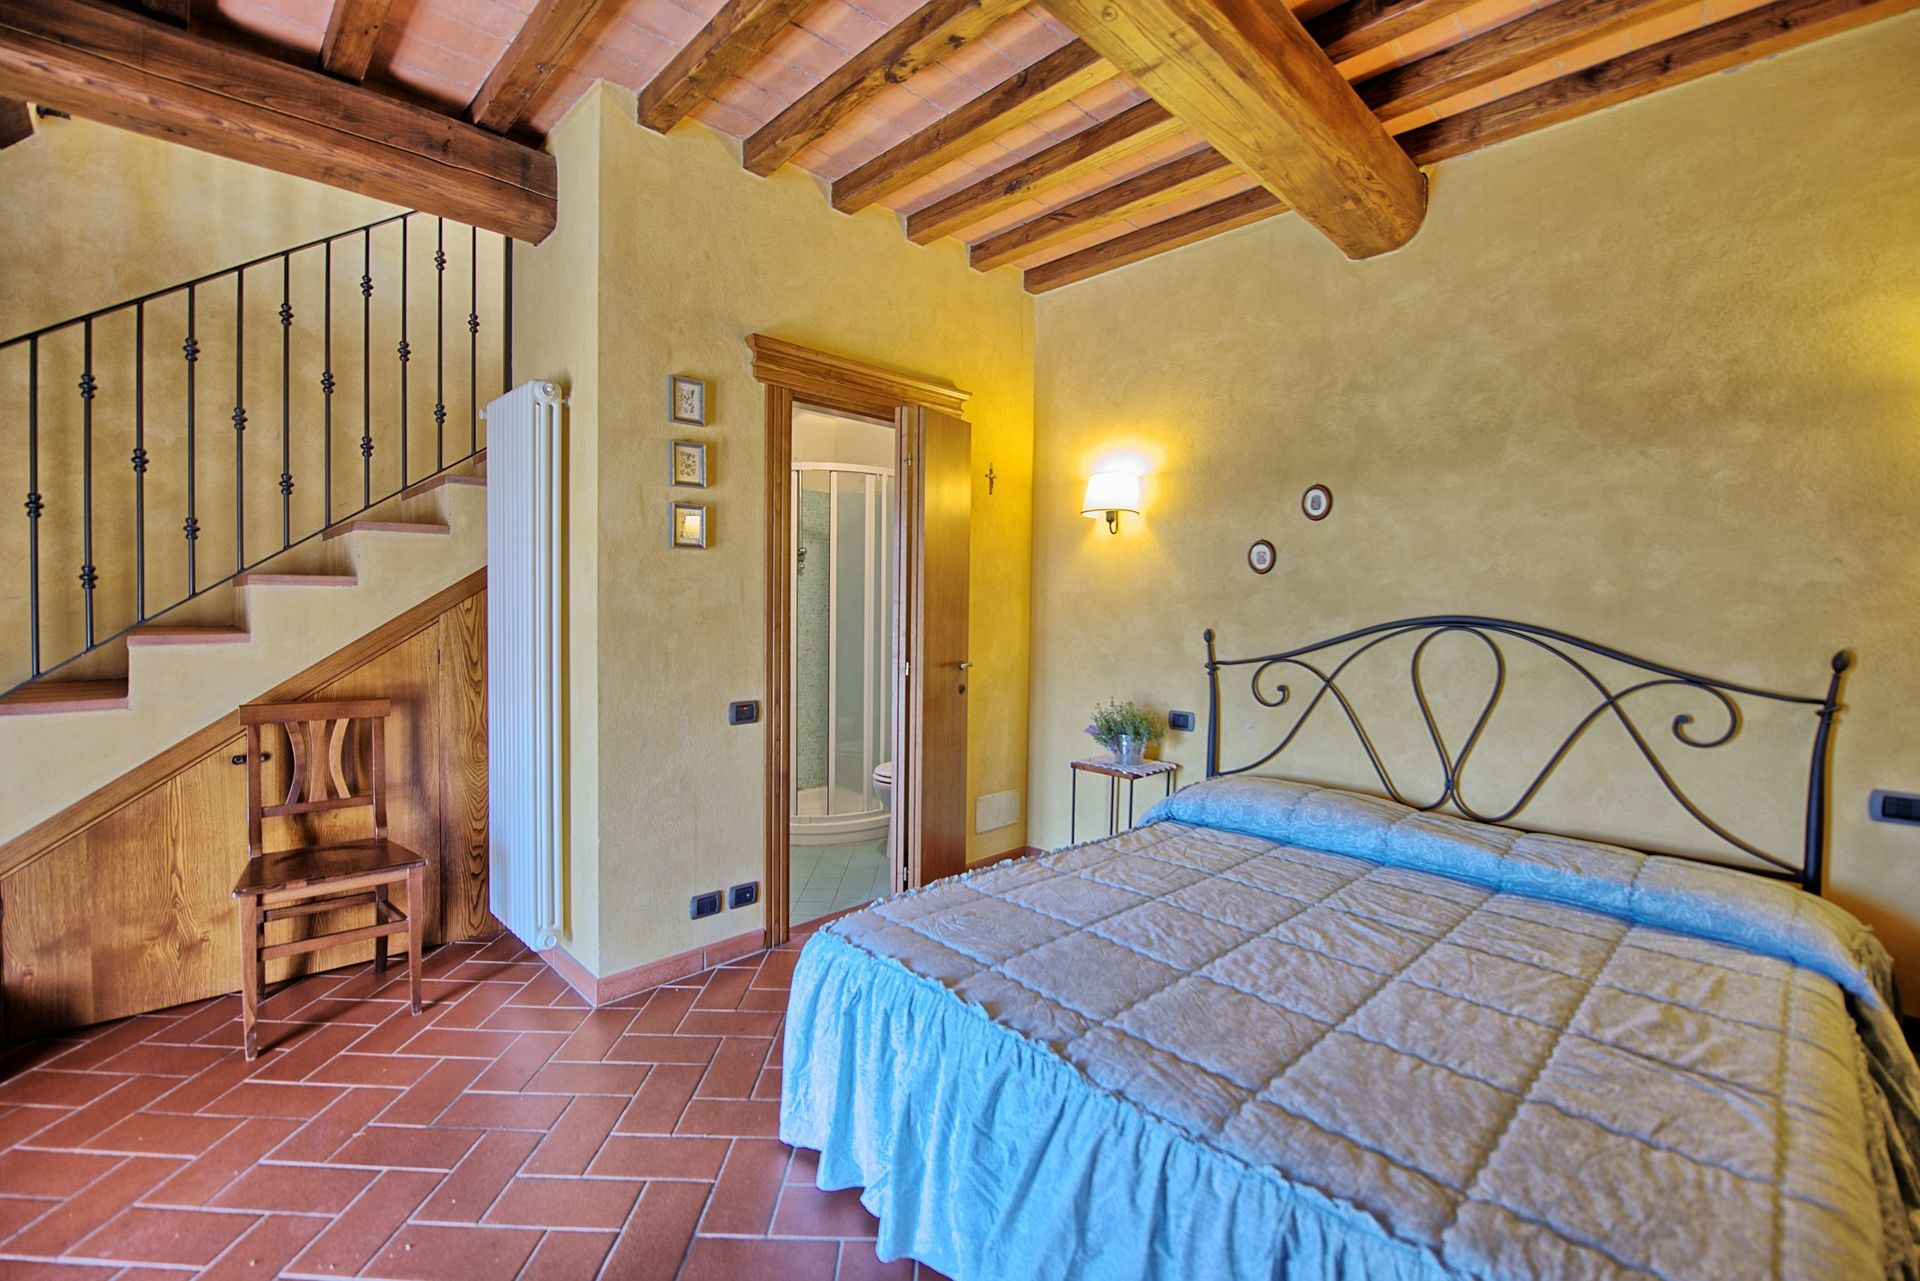 Accommodation Casa Rossa 3 Gorgognano Tuscany Italy